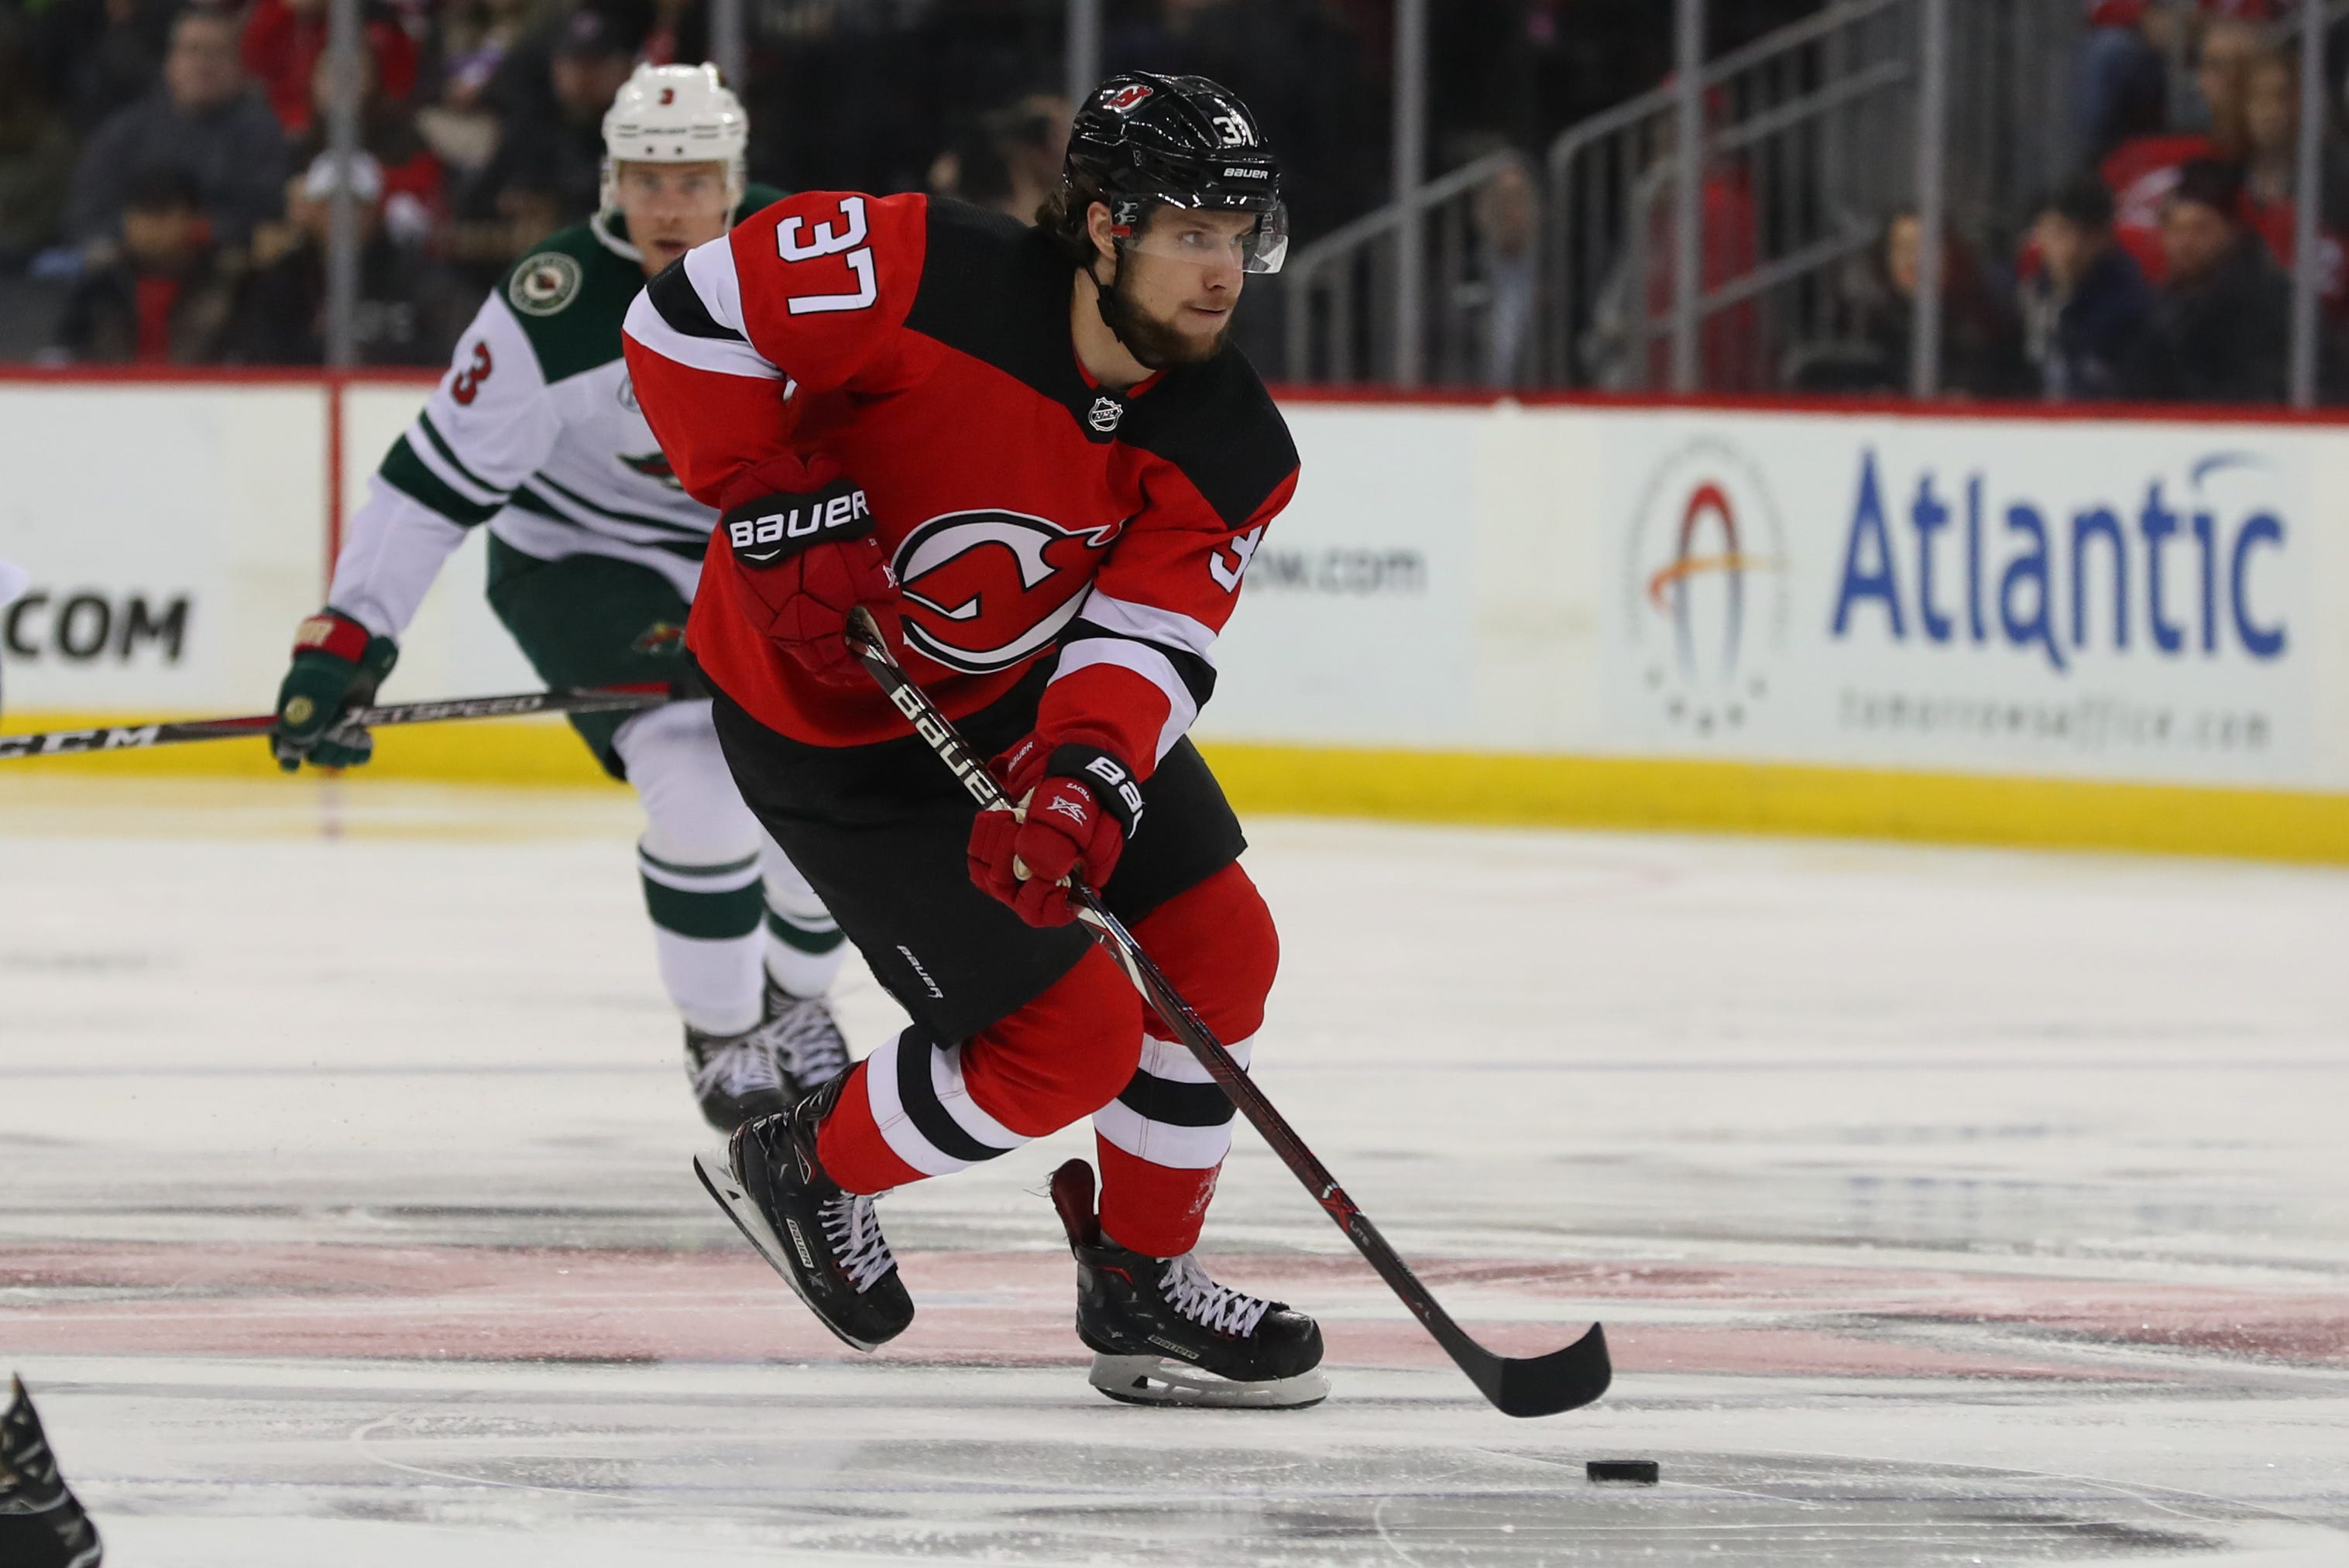 Devils re-sign Pavel Zacha to 3-year, $6.75 million contract